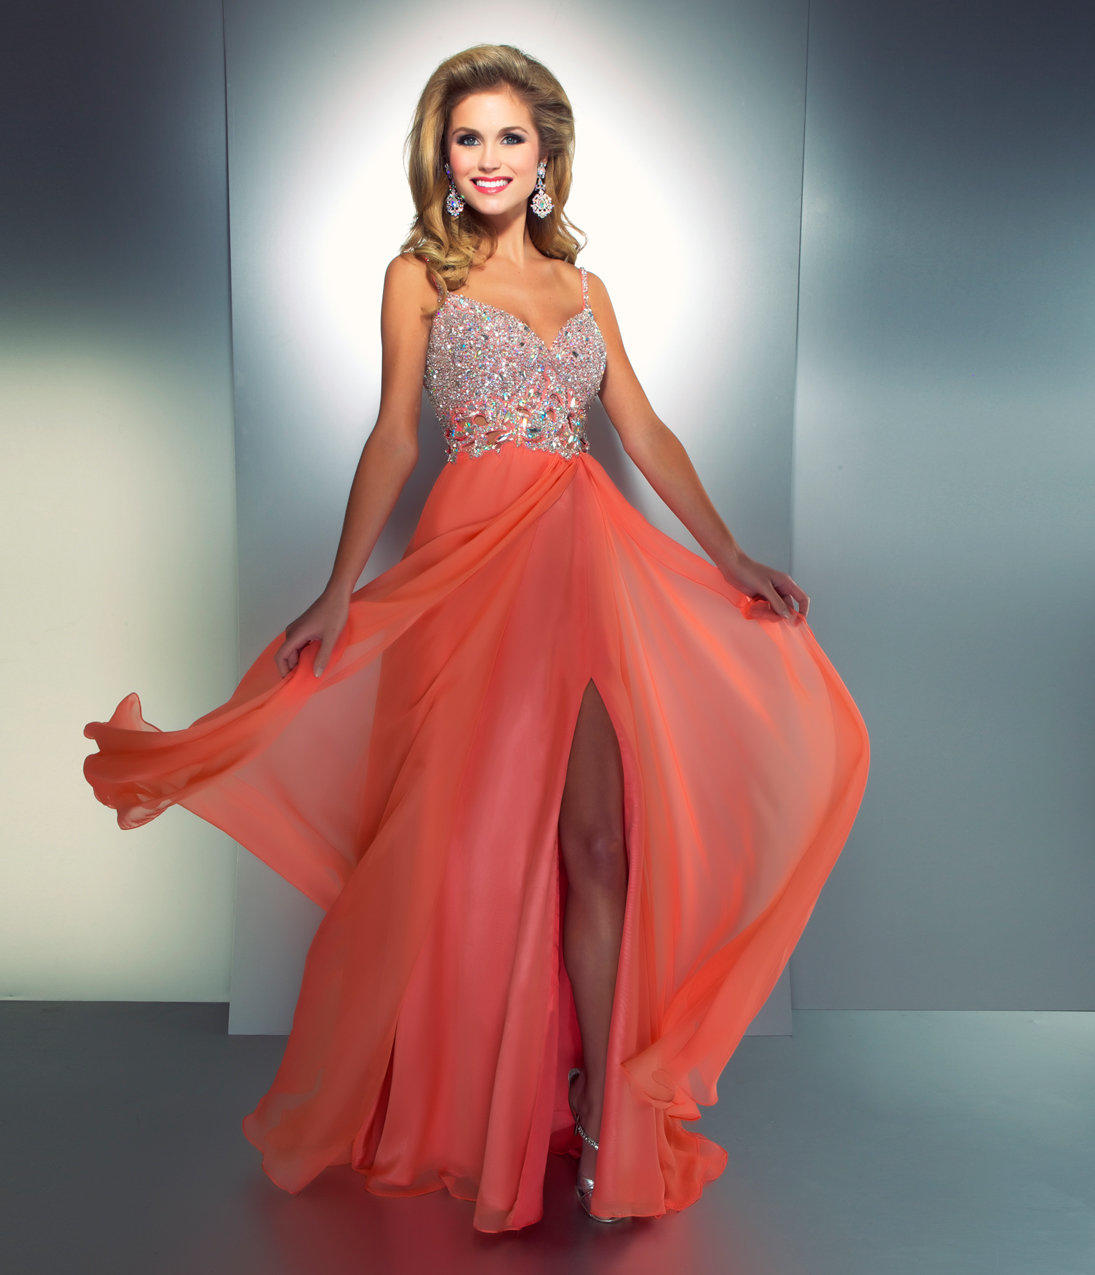 Vintage Wedding Dresses Chicago: Mac Duggal Prom 2013-Coral Chiffon From Unique Vintage